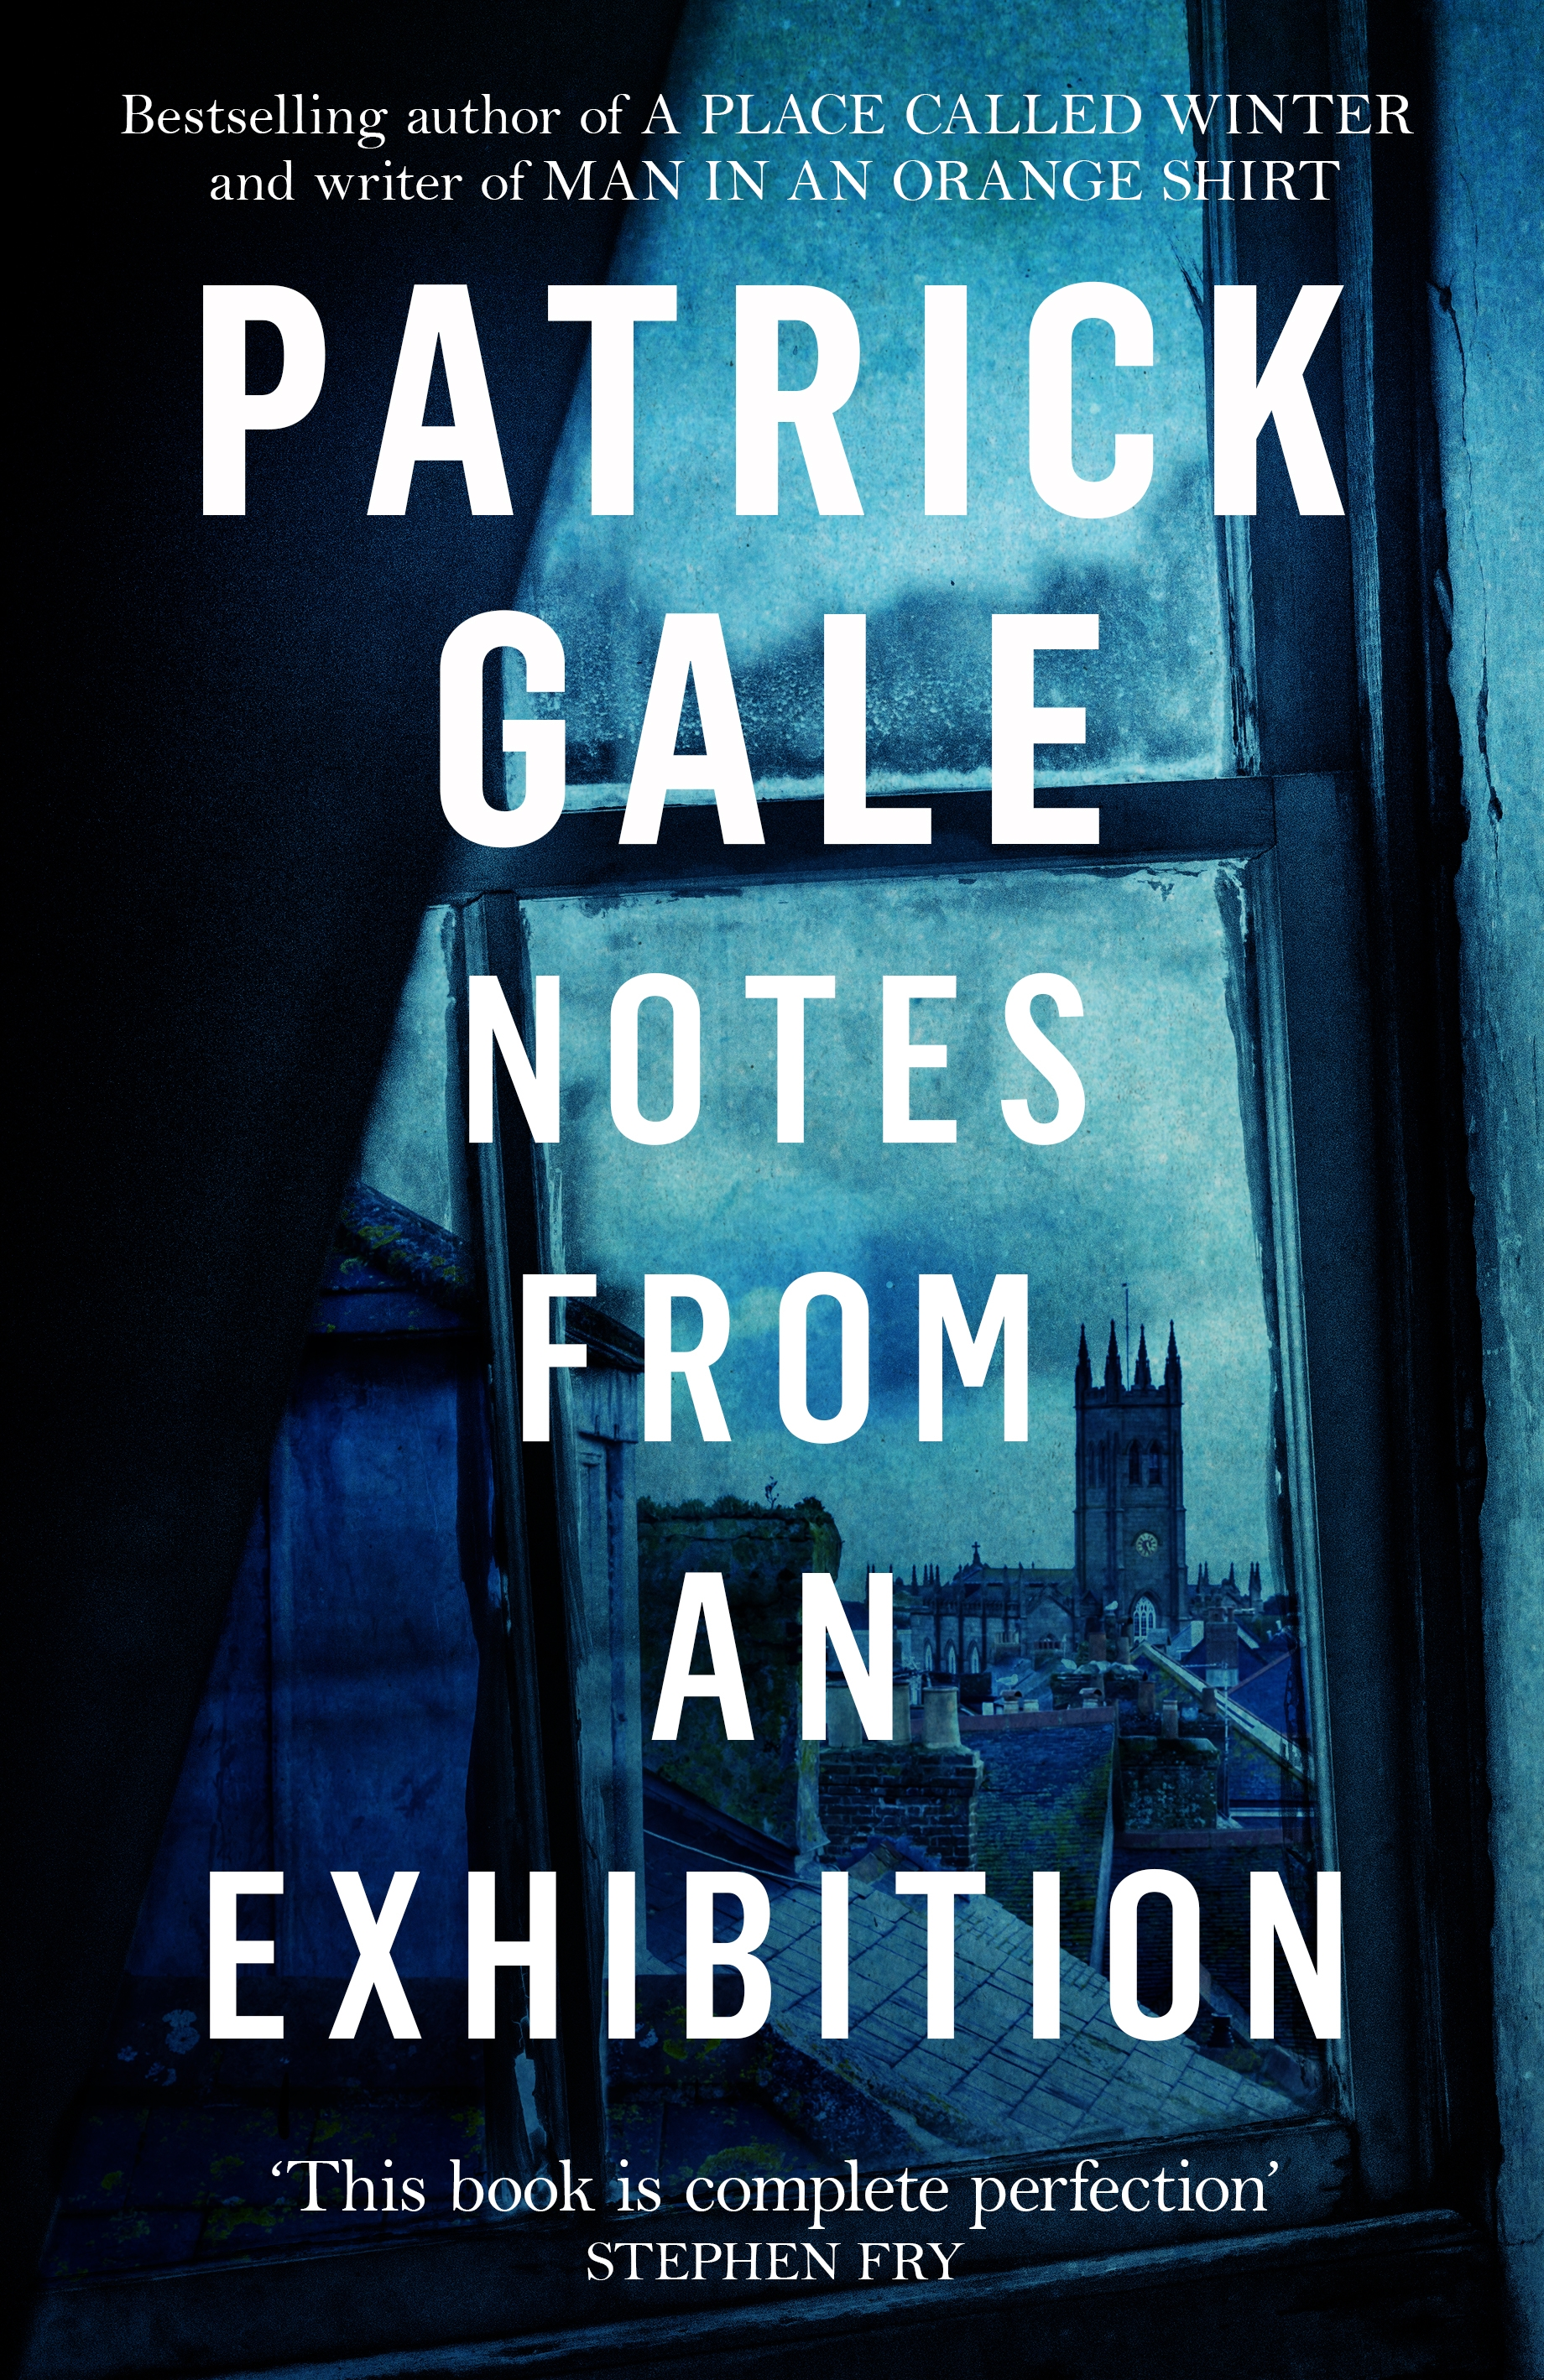 Patrick Gale » Notes from an Exhibition